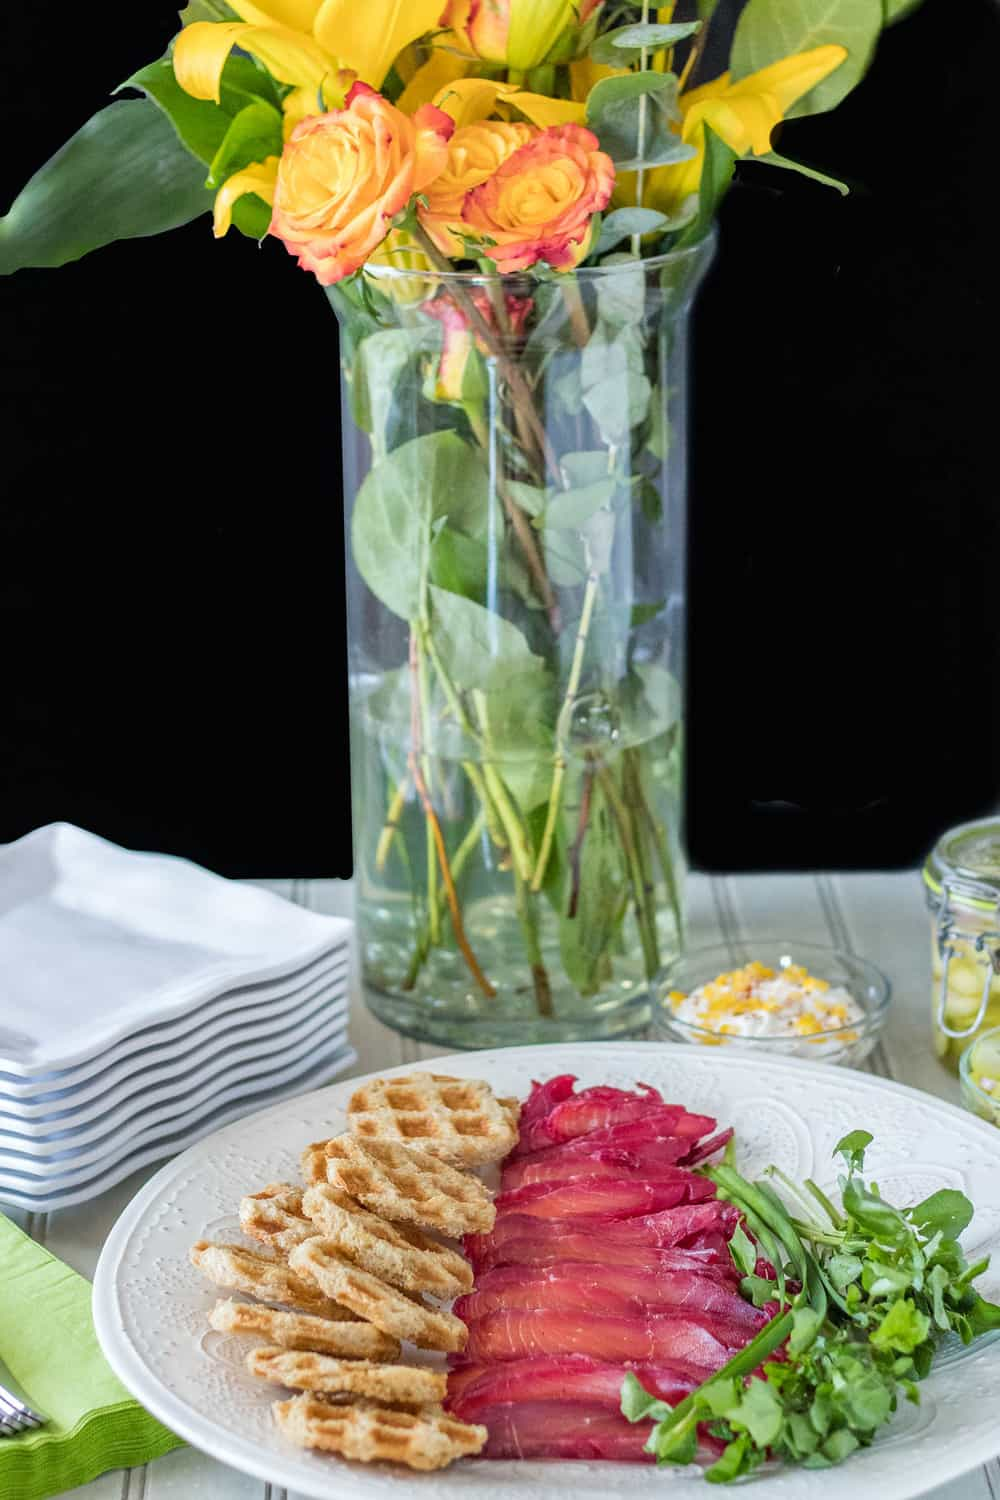 Beet and Gin Cured Salmon Recipe - beet and gin cured salmon with waffle toast and watercress and a vase with fresh flowers in the background.